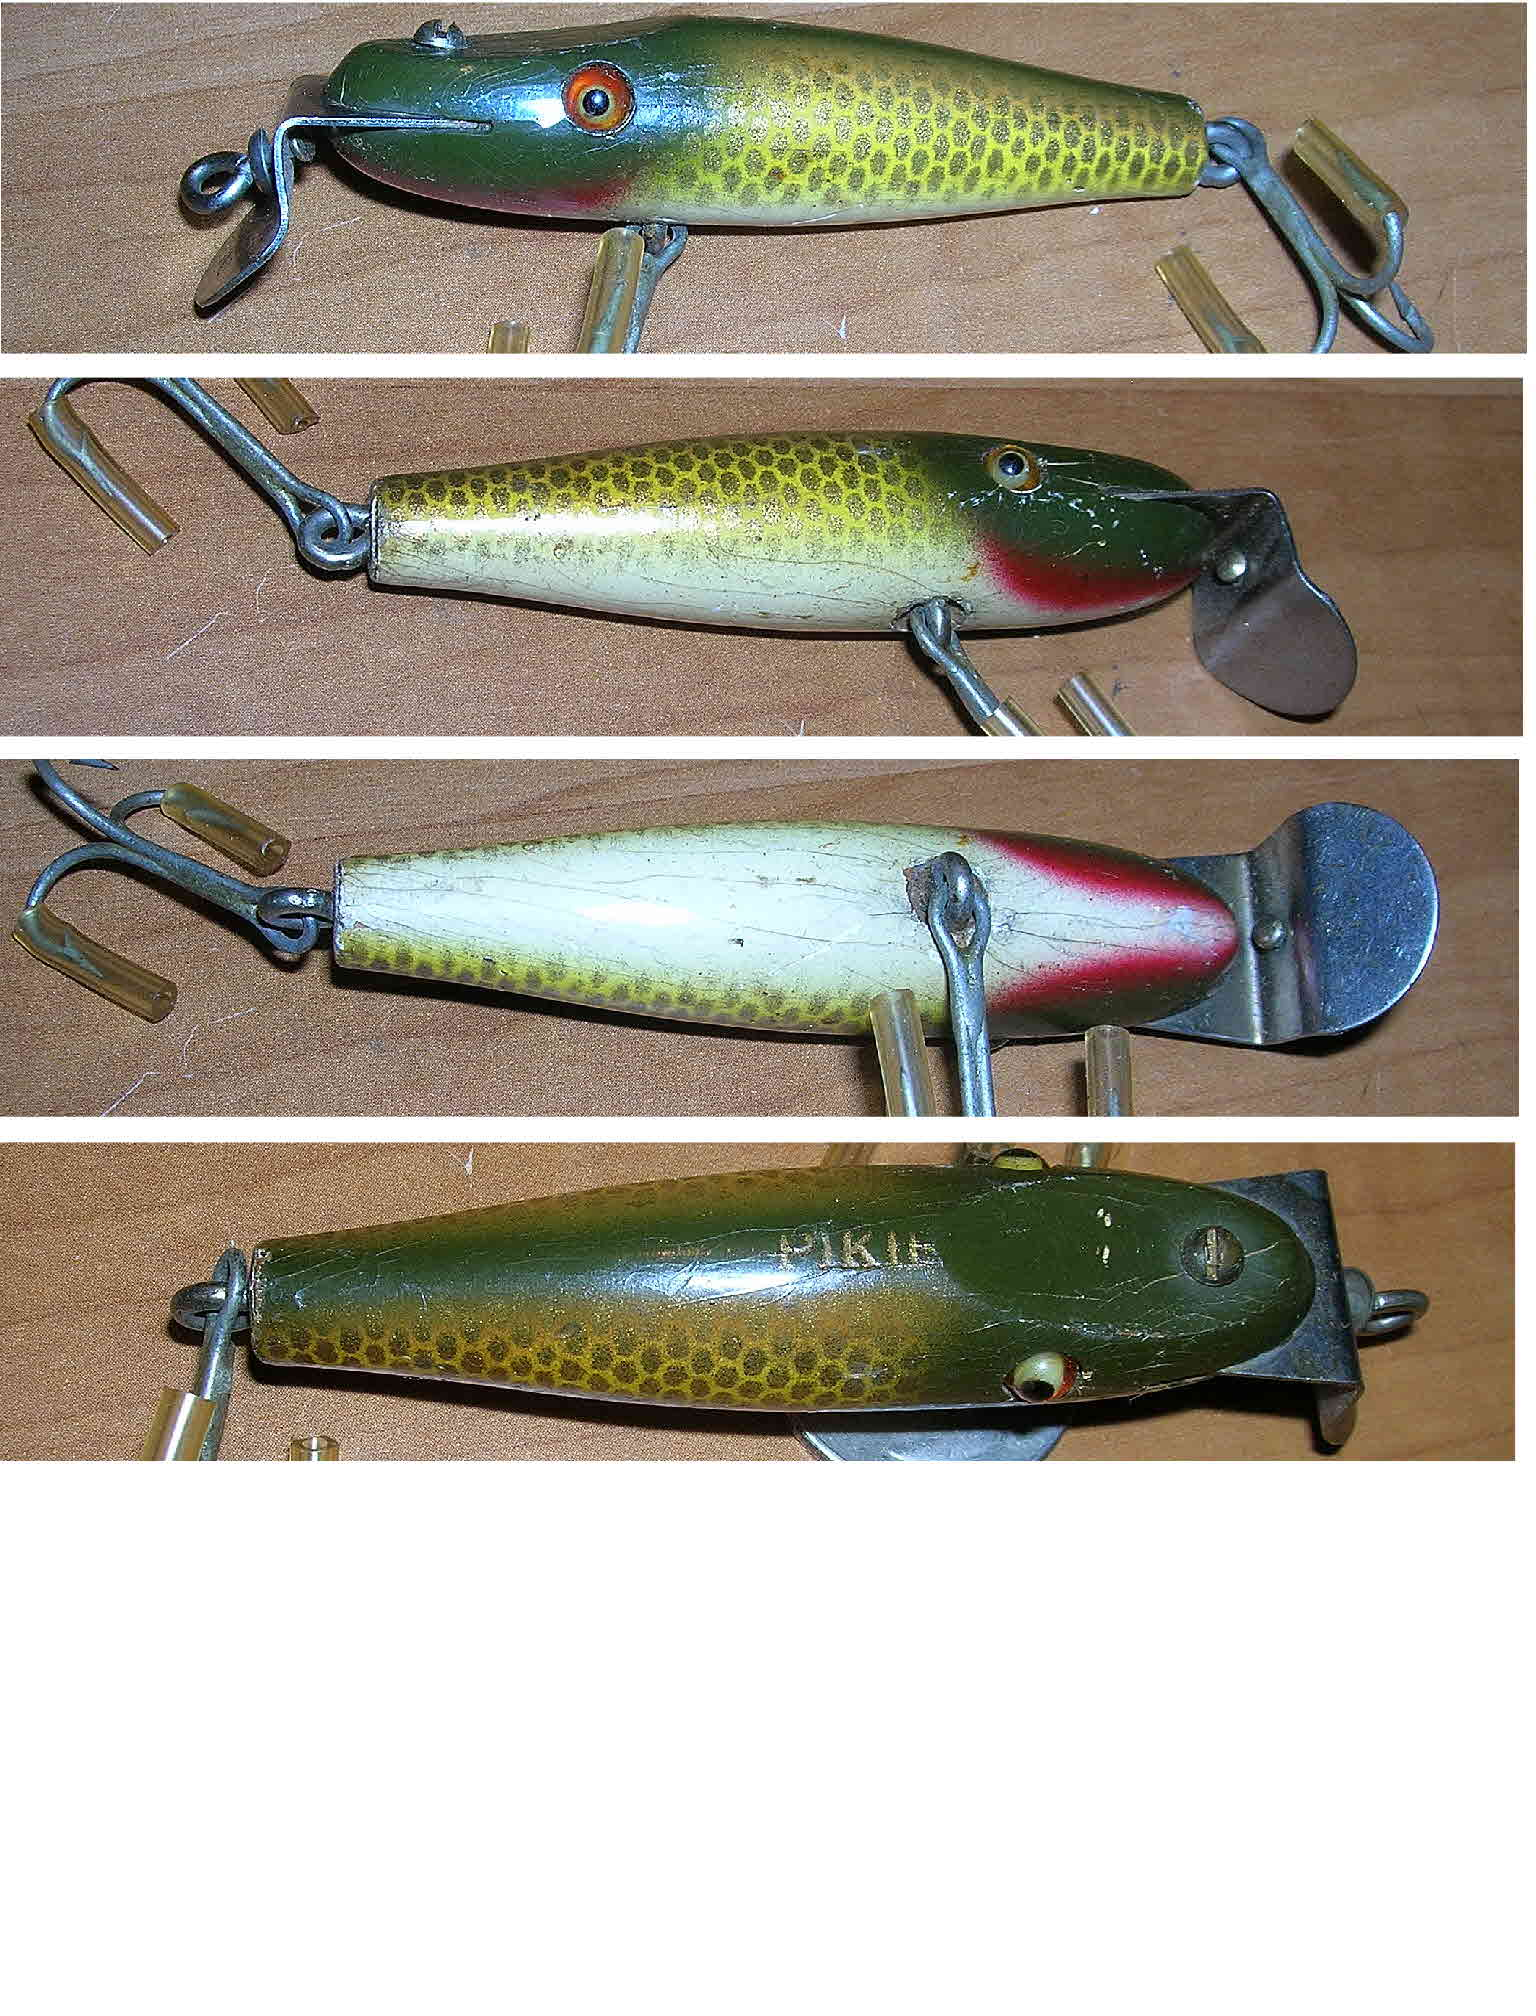 Creek chub lures fishing creek chub midget pikie 2204 very nice circ 1940s wooden lure with glass eyes both eyes are fine the lure is in the golden shiner color pattern nvjuhfo Gallery